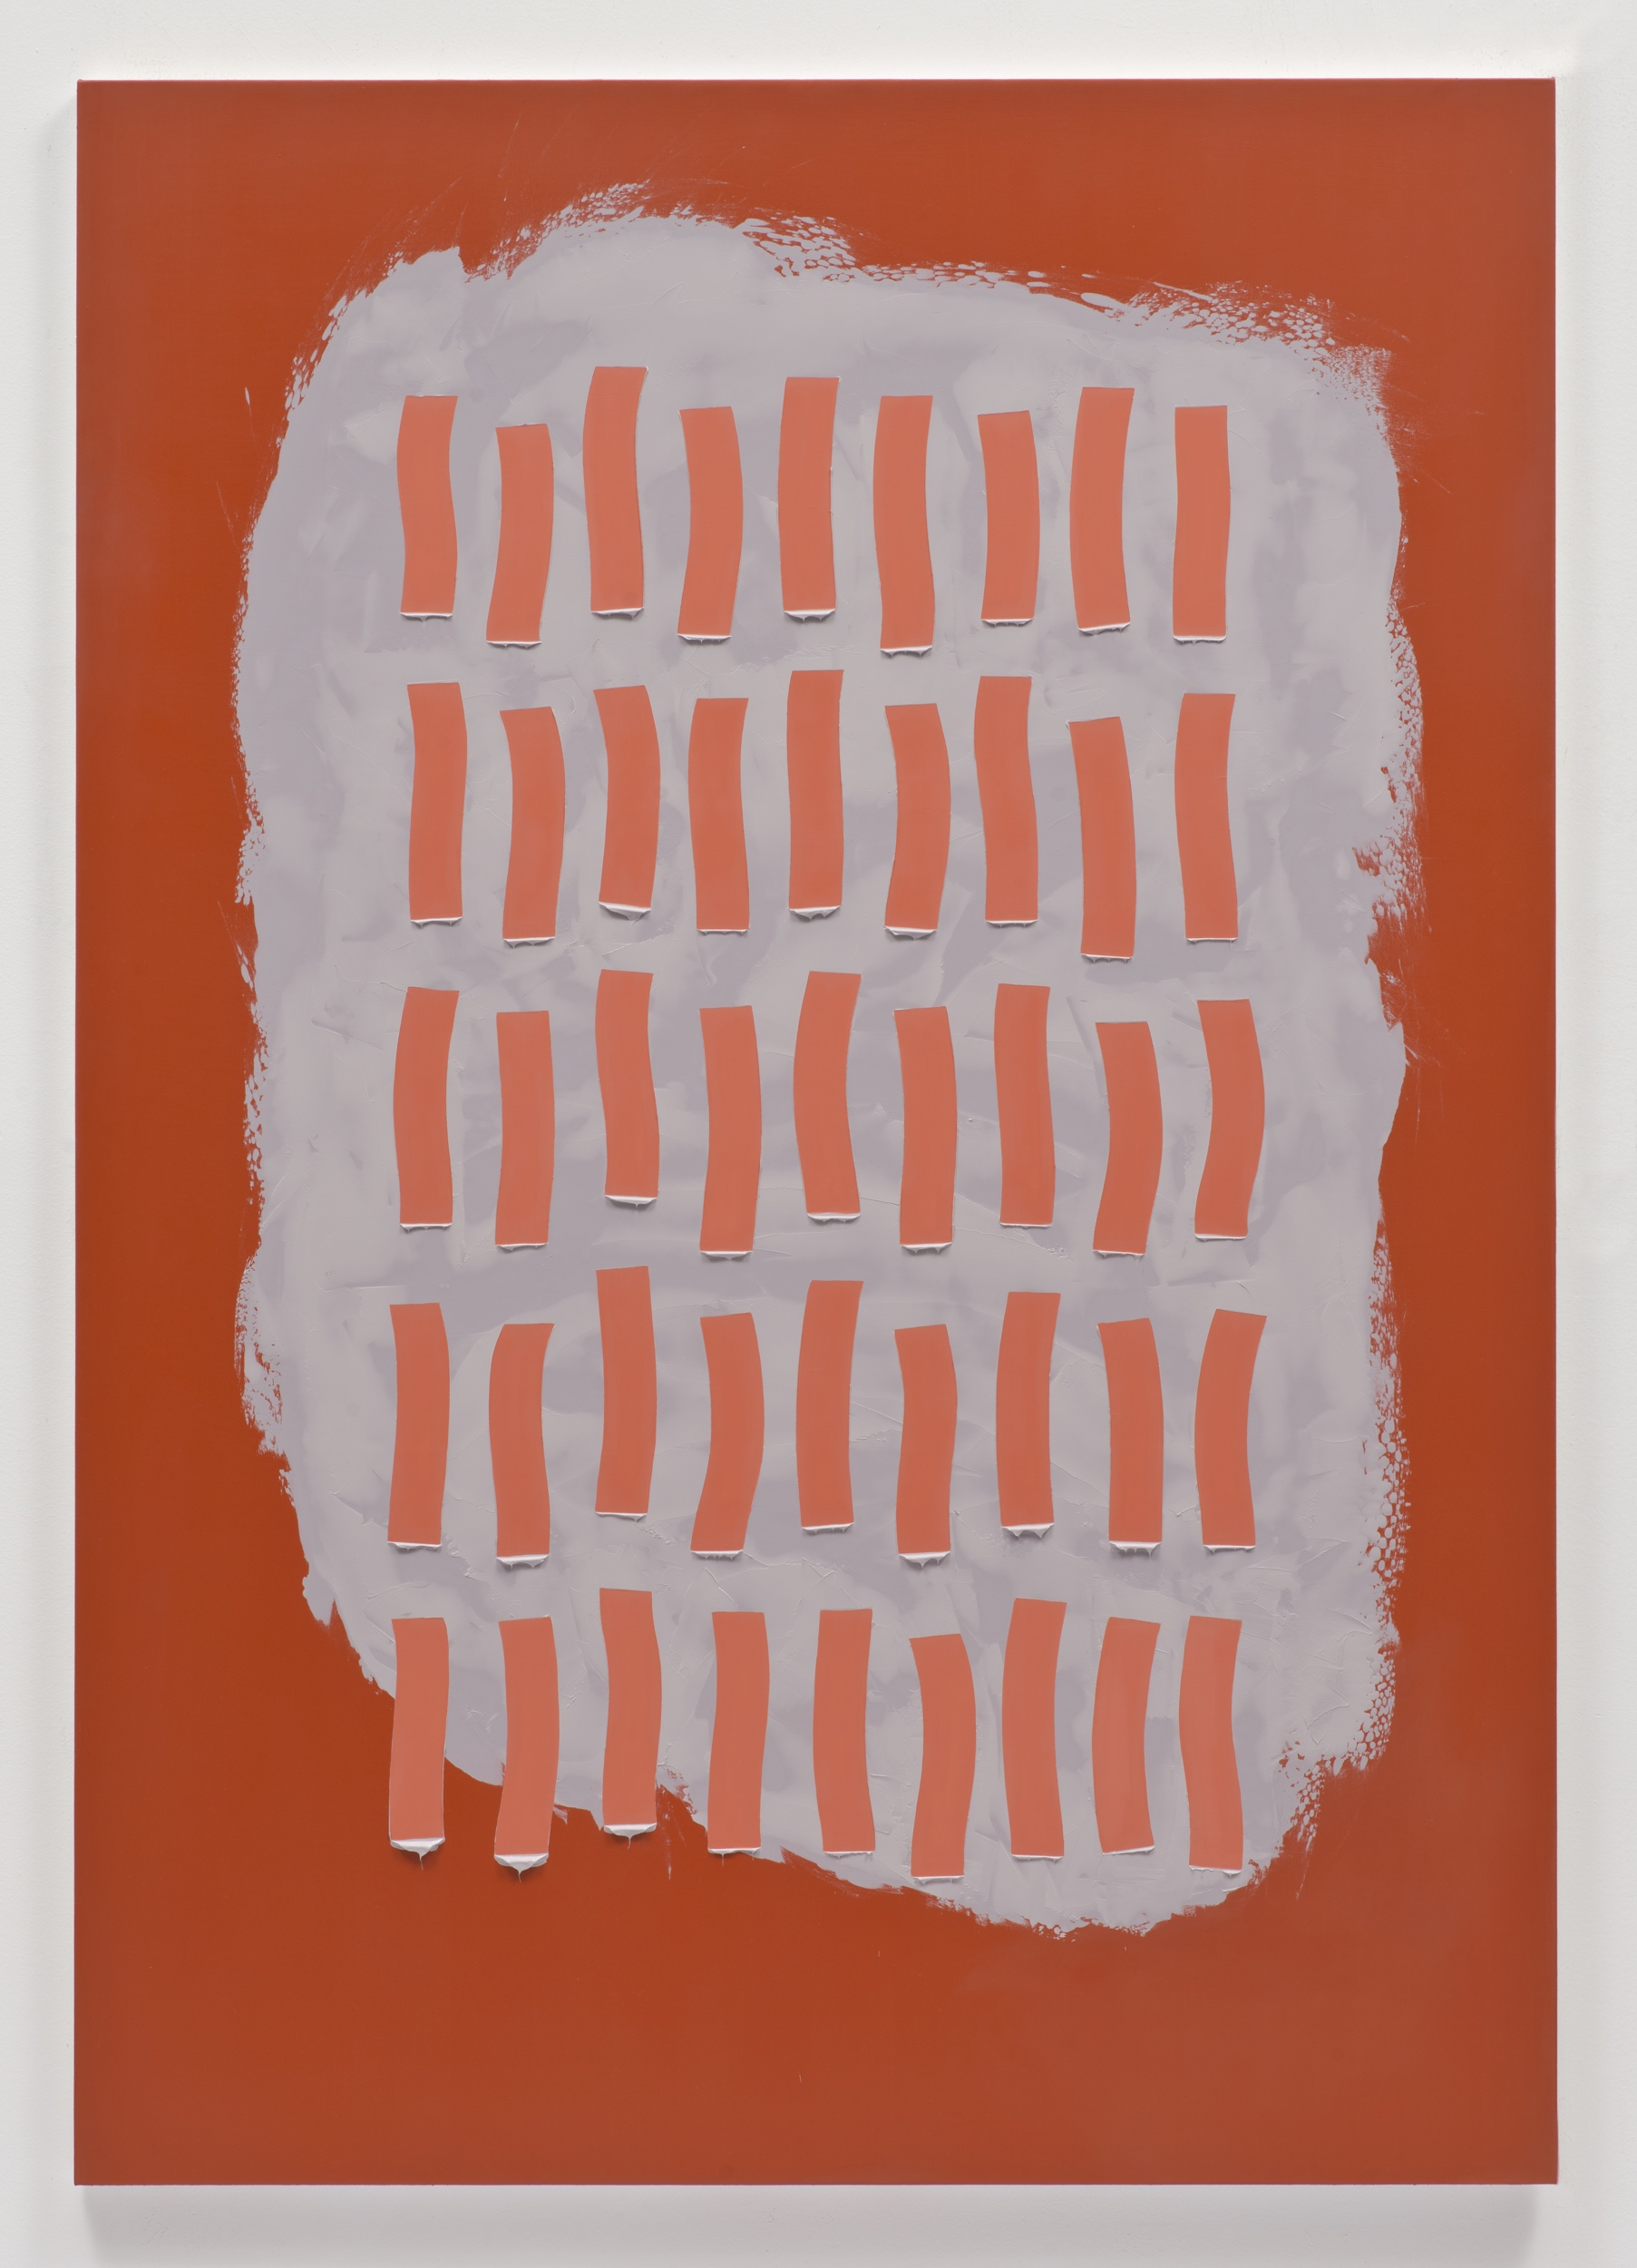 Alex Olson,  Proposal 12 , 2013, oil and modeling paste on linen, 61 x 43 inches (154.9 x 109.2 cm)